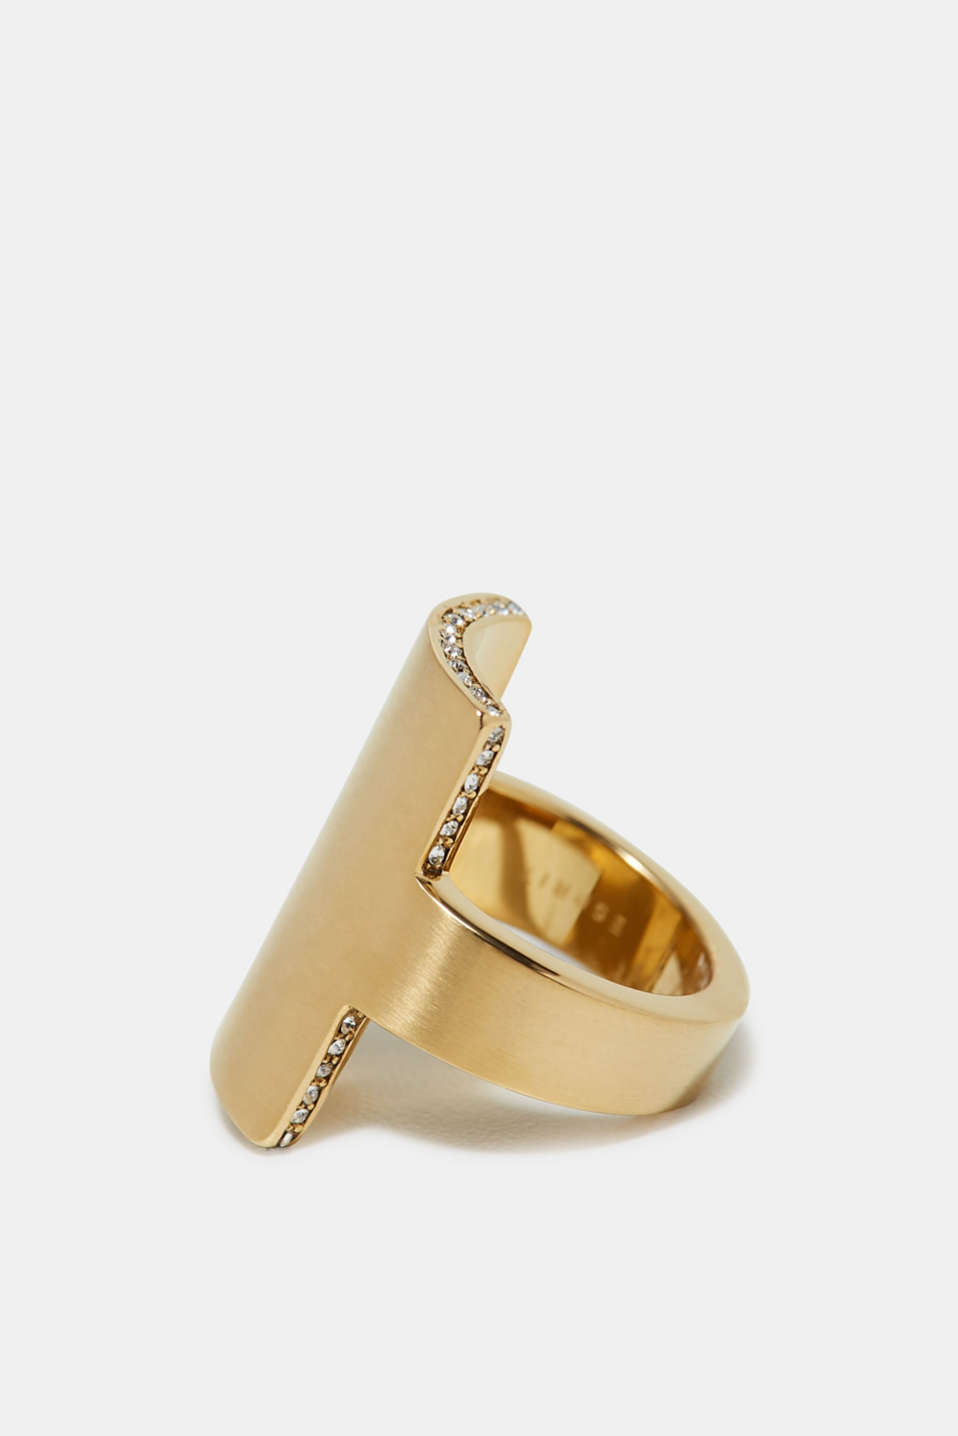 Esprit - Yellow gold tone statement ring, made of stainless steel